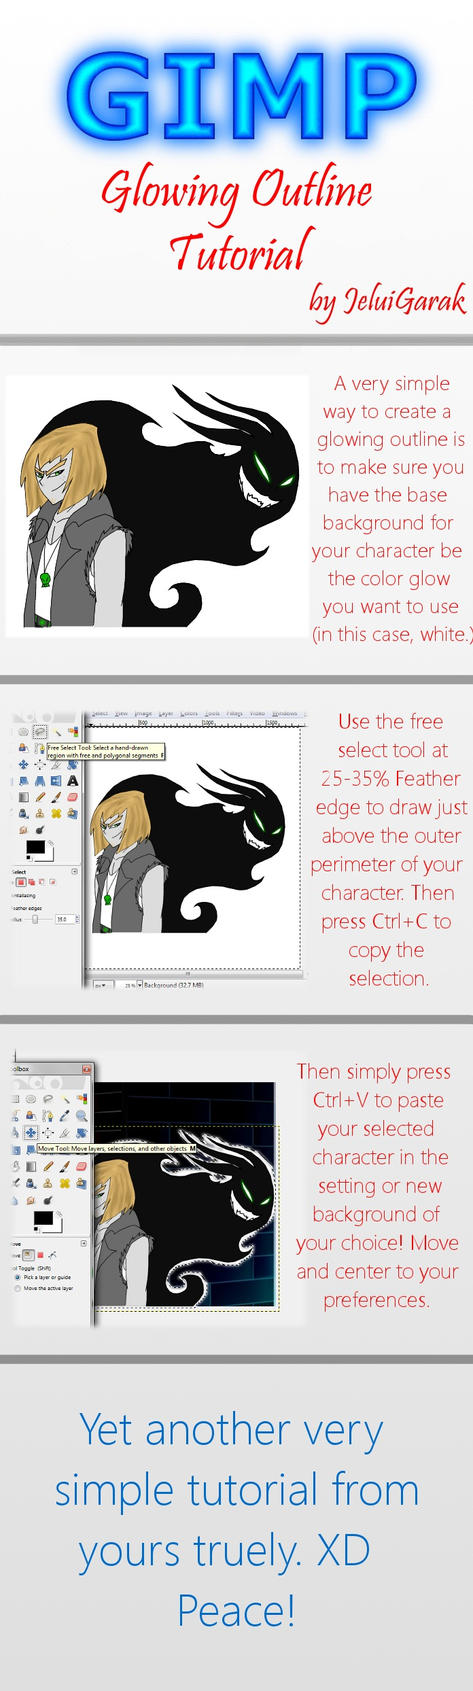 GIMP Tutorial: Glowing Outline by BeJuled